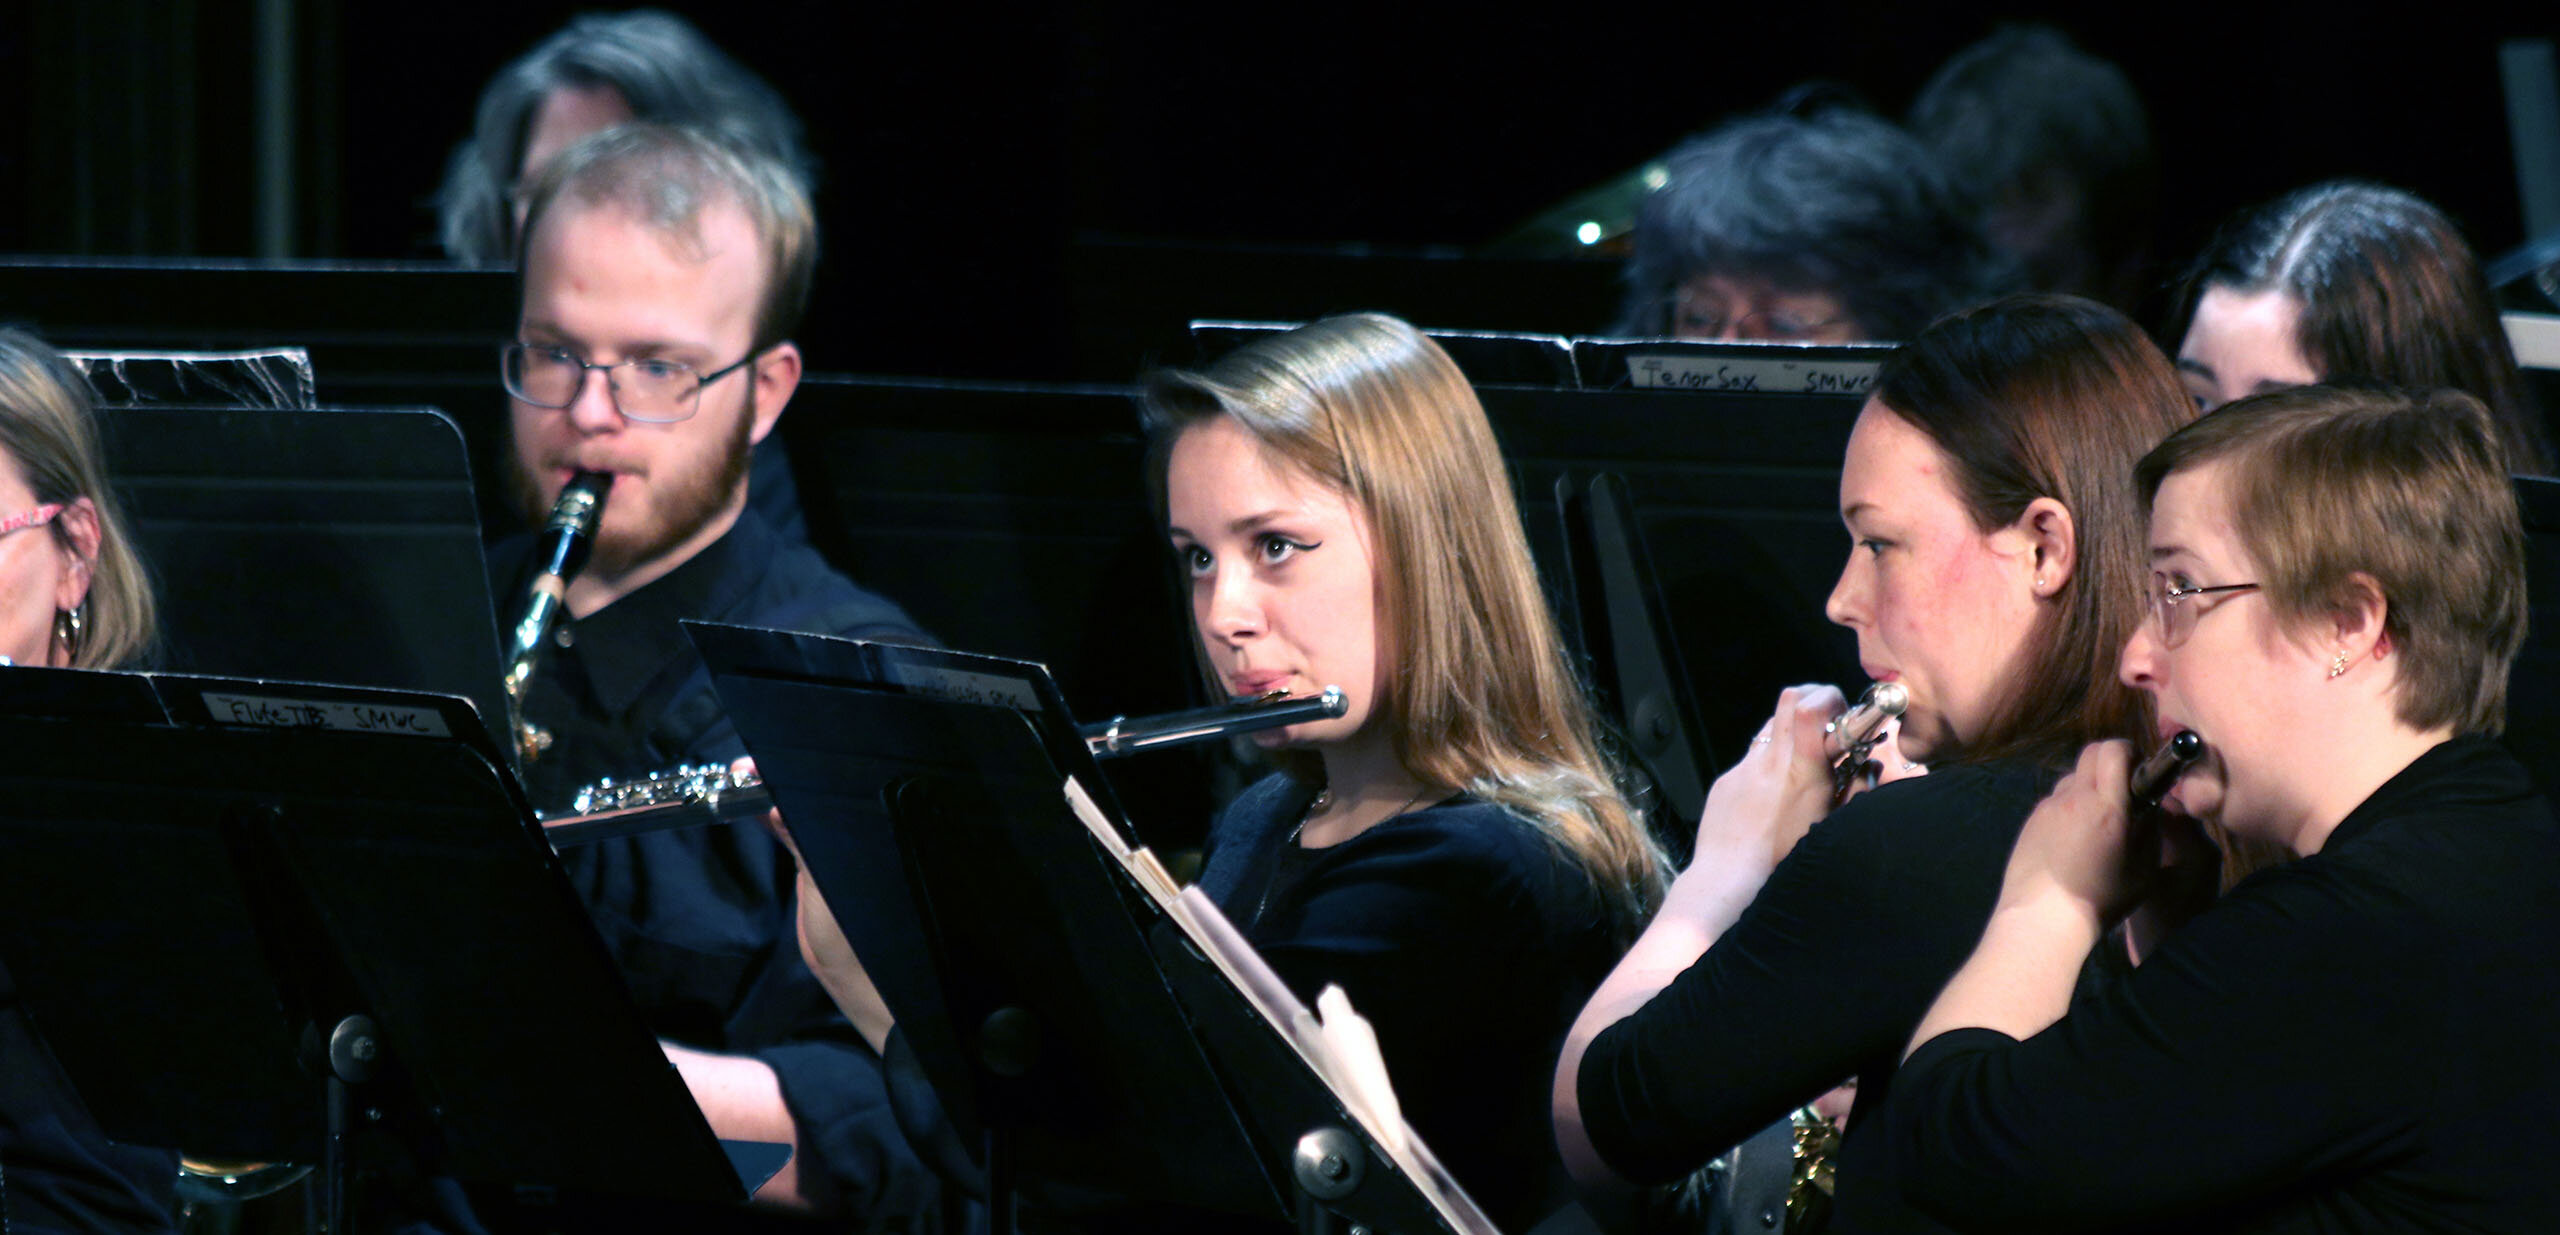 Flautist playing during a concert